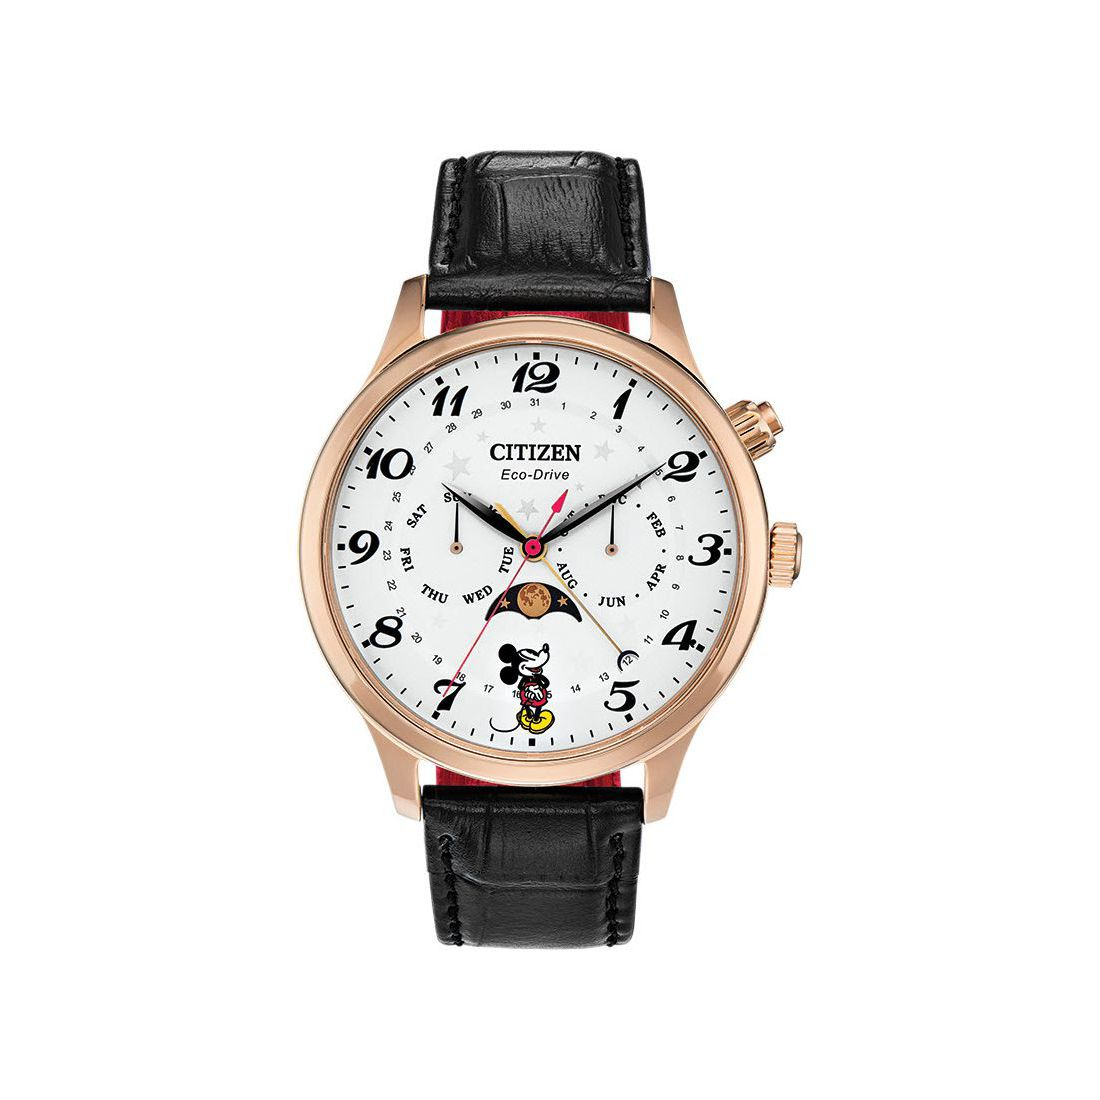 Citizen MICKEY MOUSE MOON PHASE - Taras Design Montreal